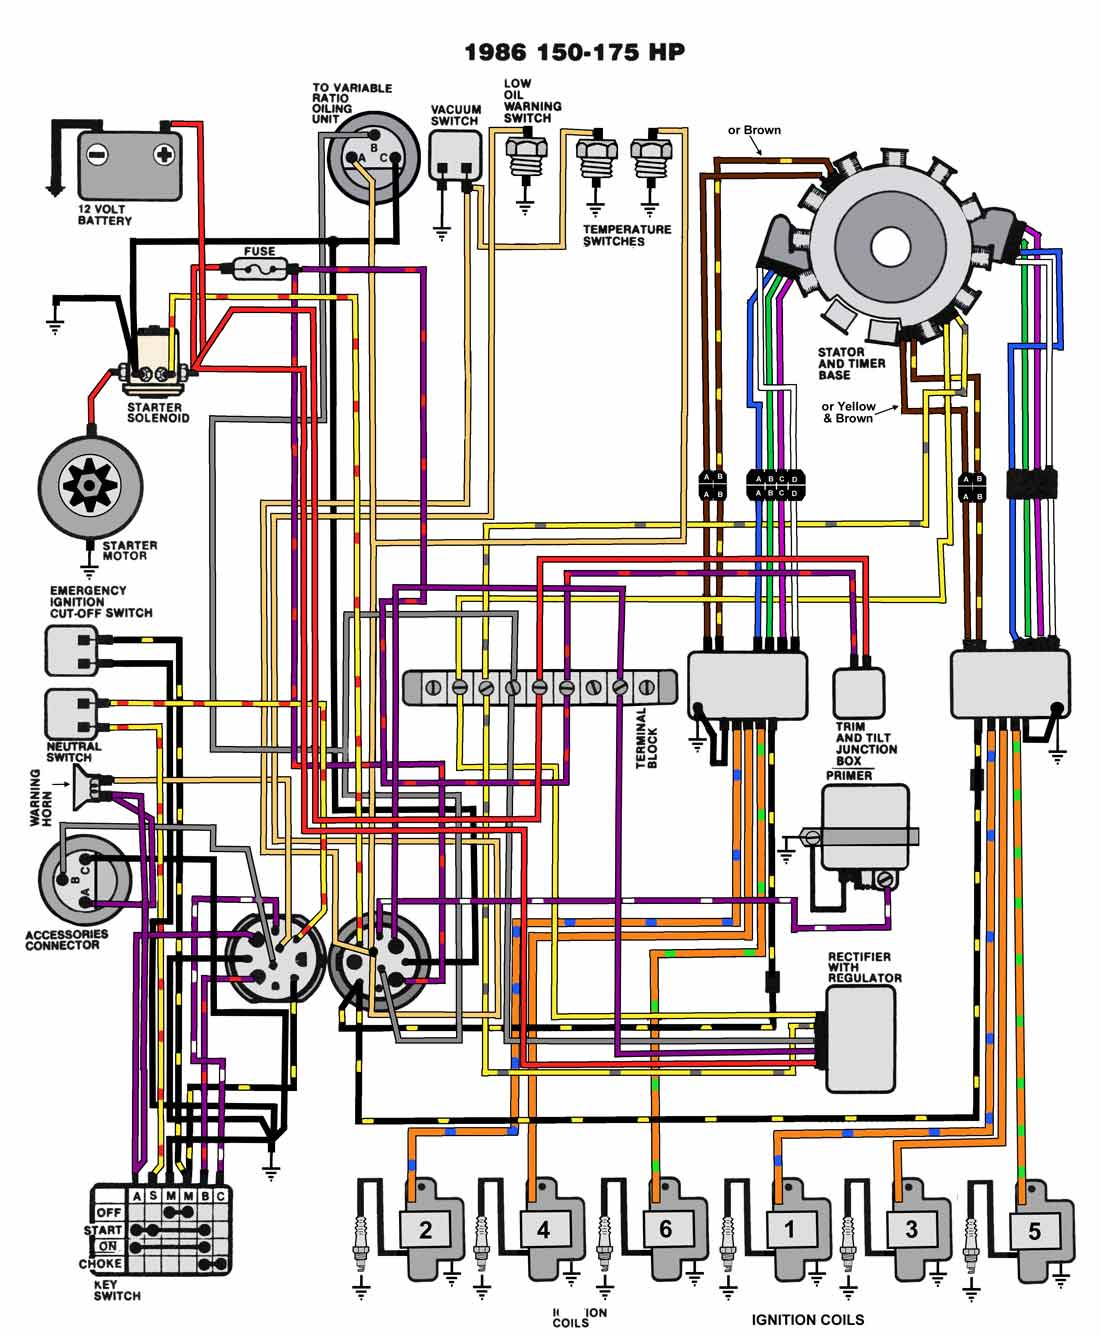 1986_150_175 omc wiring diagram 1967 johnson 40 wiring diagram \u2022 wiring johnson ignition switch wiring diagram at bayanpartner.co